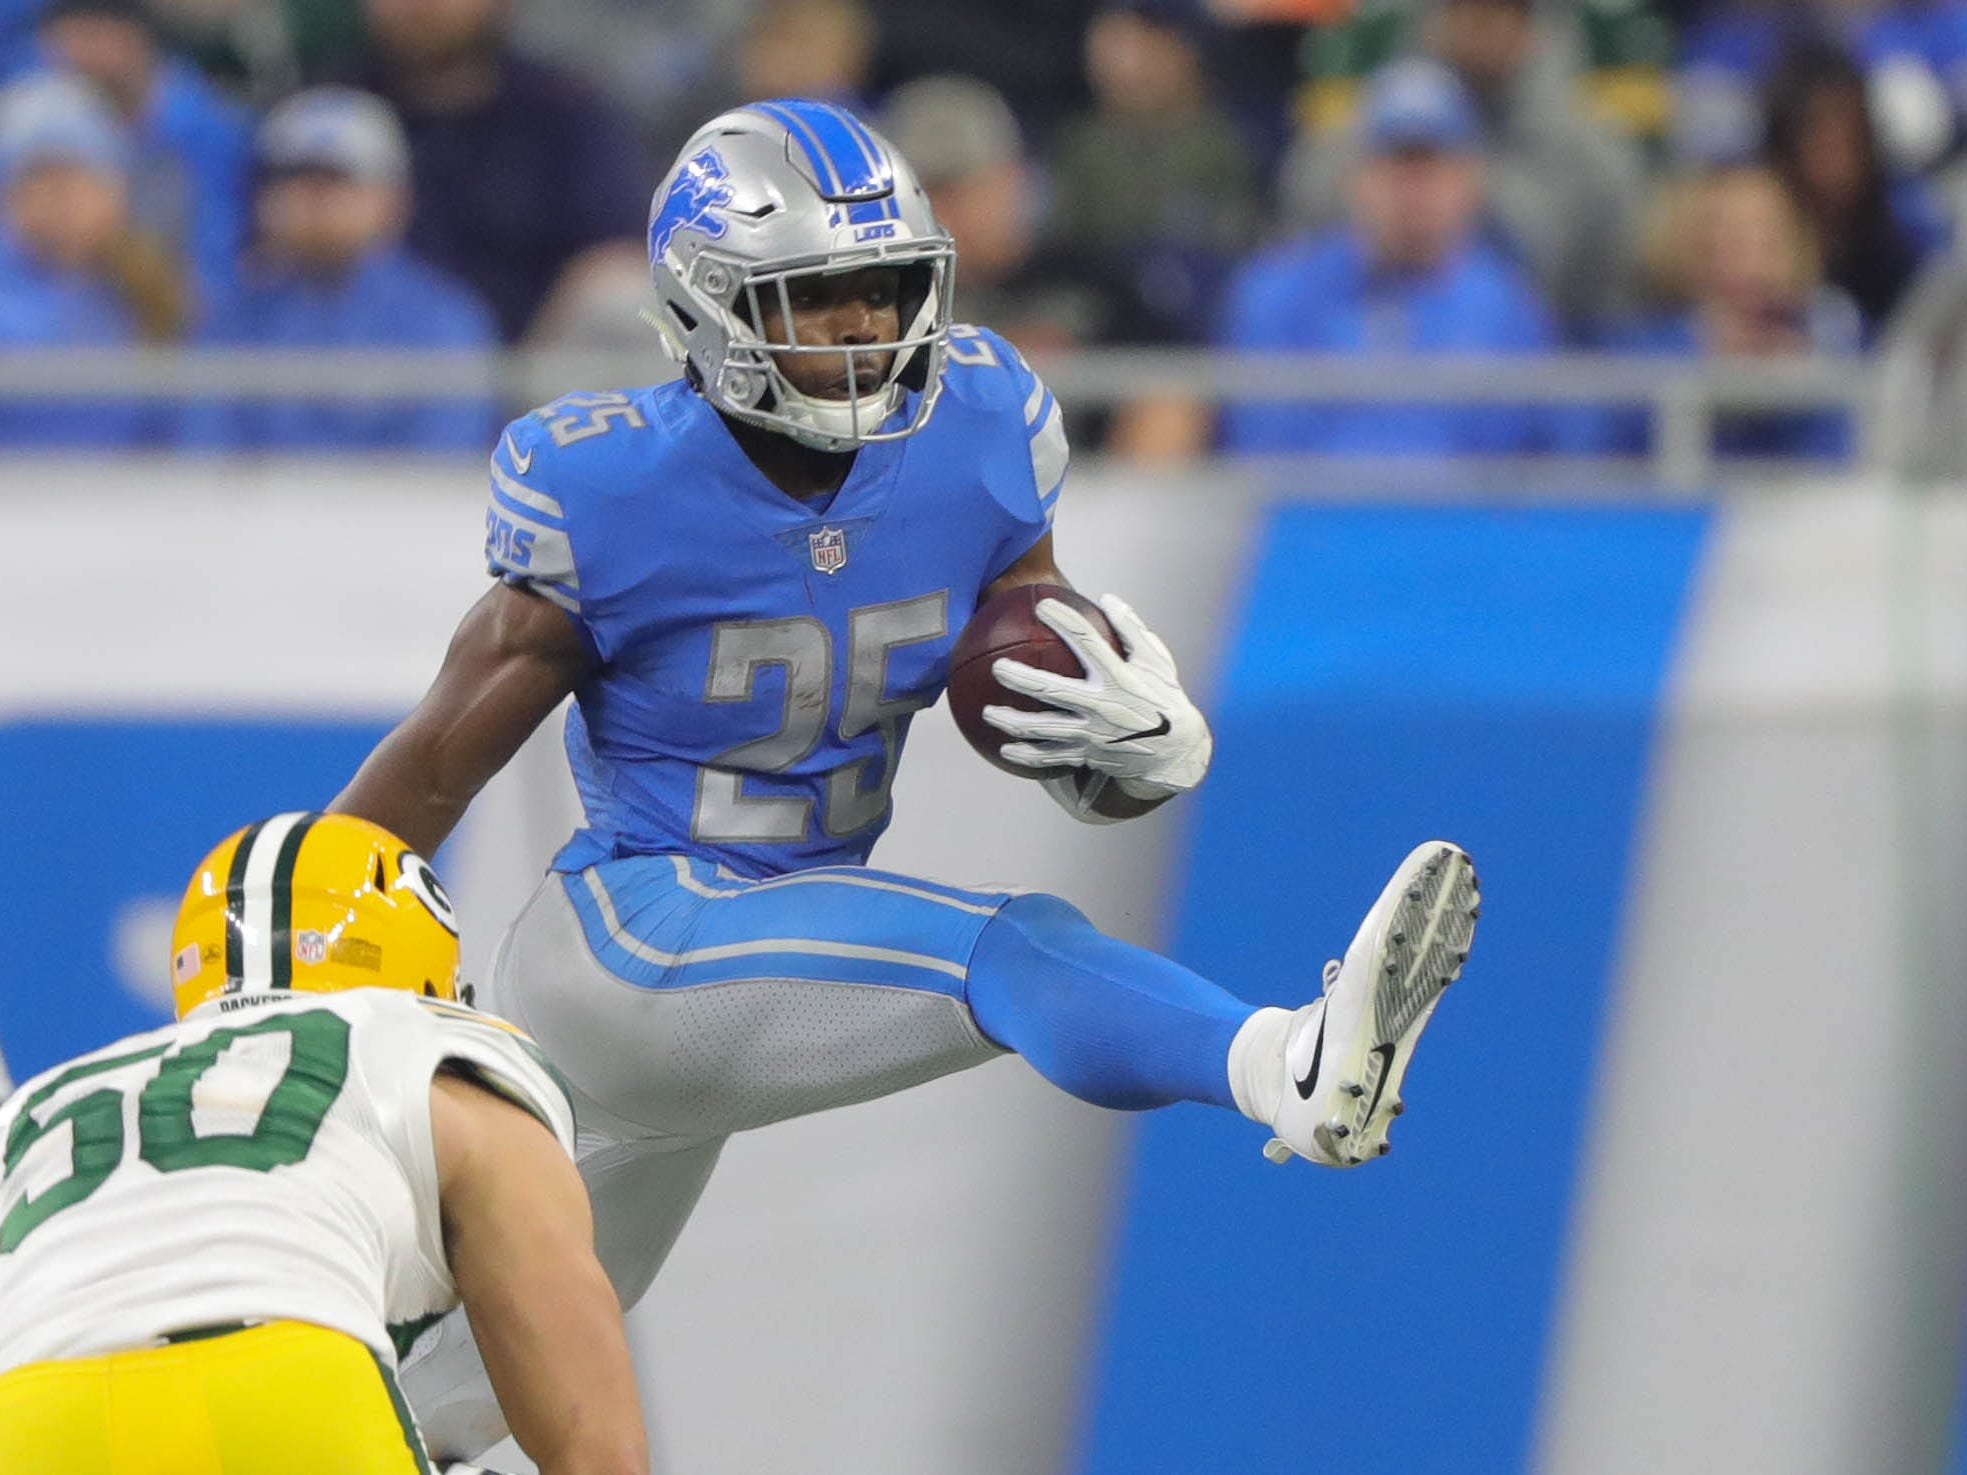 RB Theo Riddick. Overall: 84. Speed: 87. Awareness: 81. Acceleration: 90. Agility: 94.